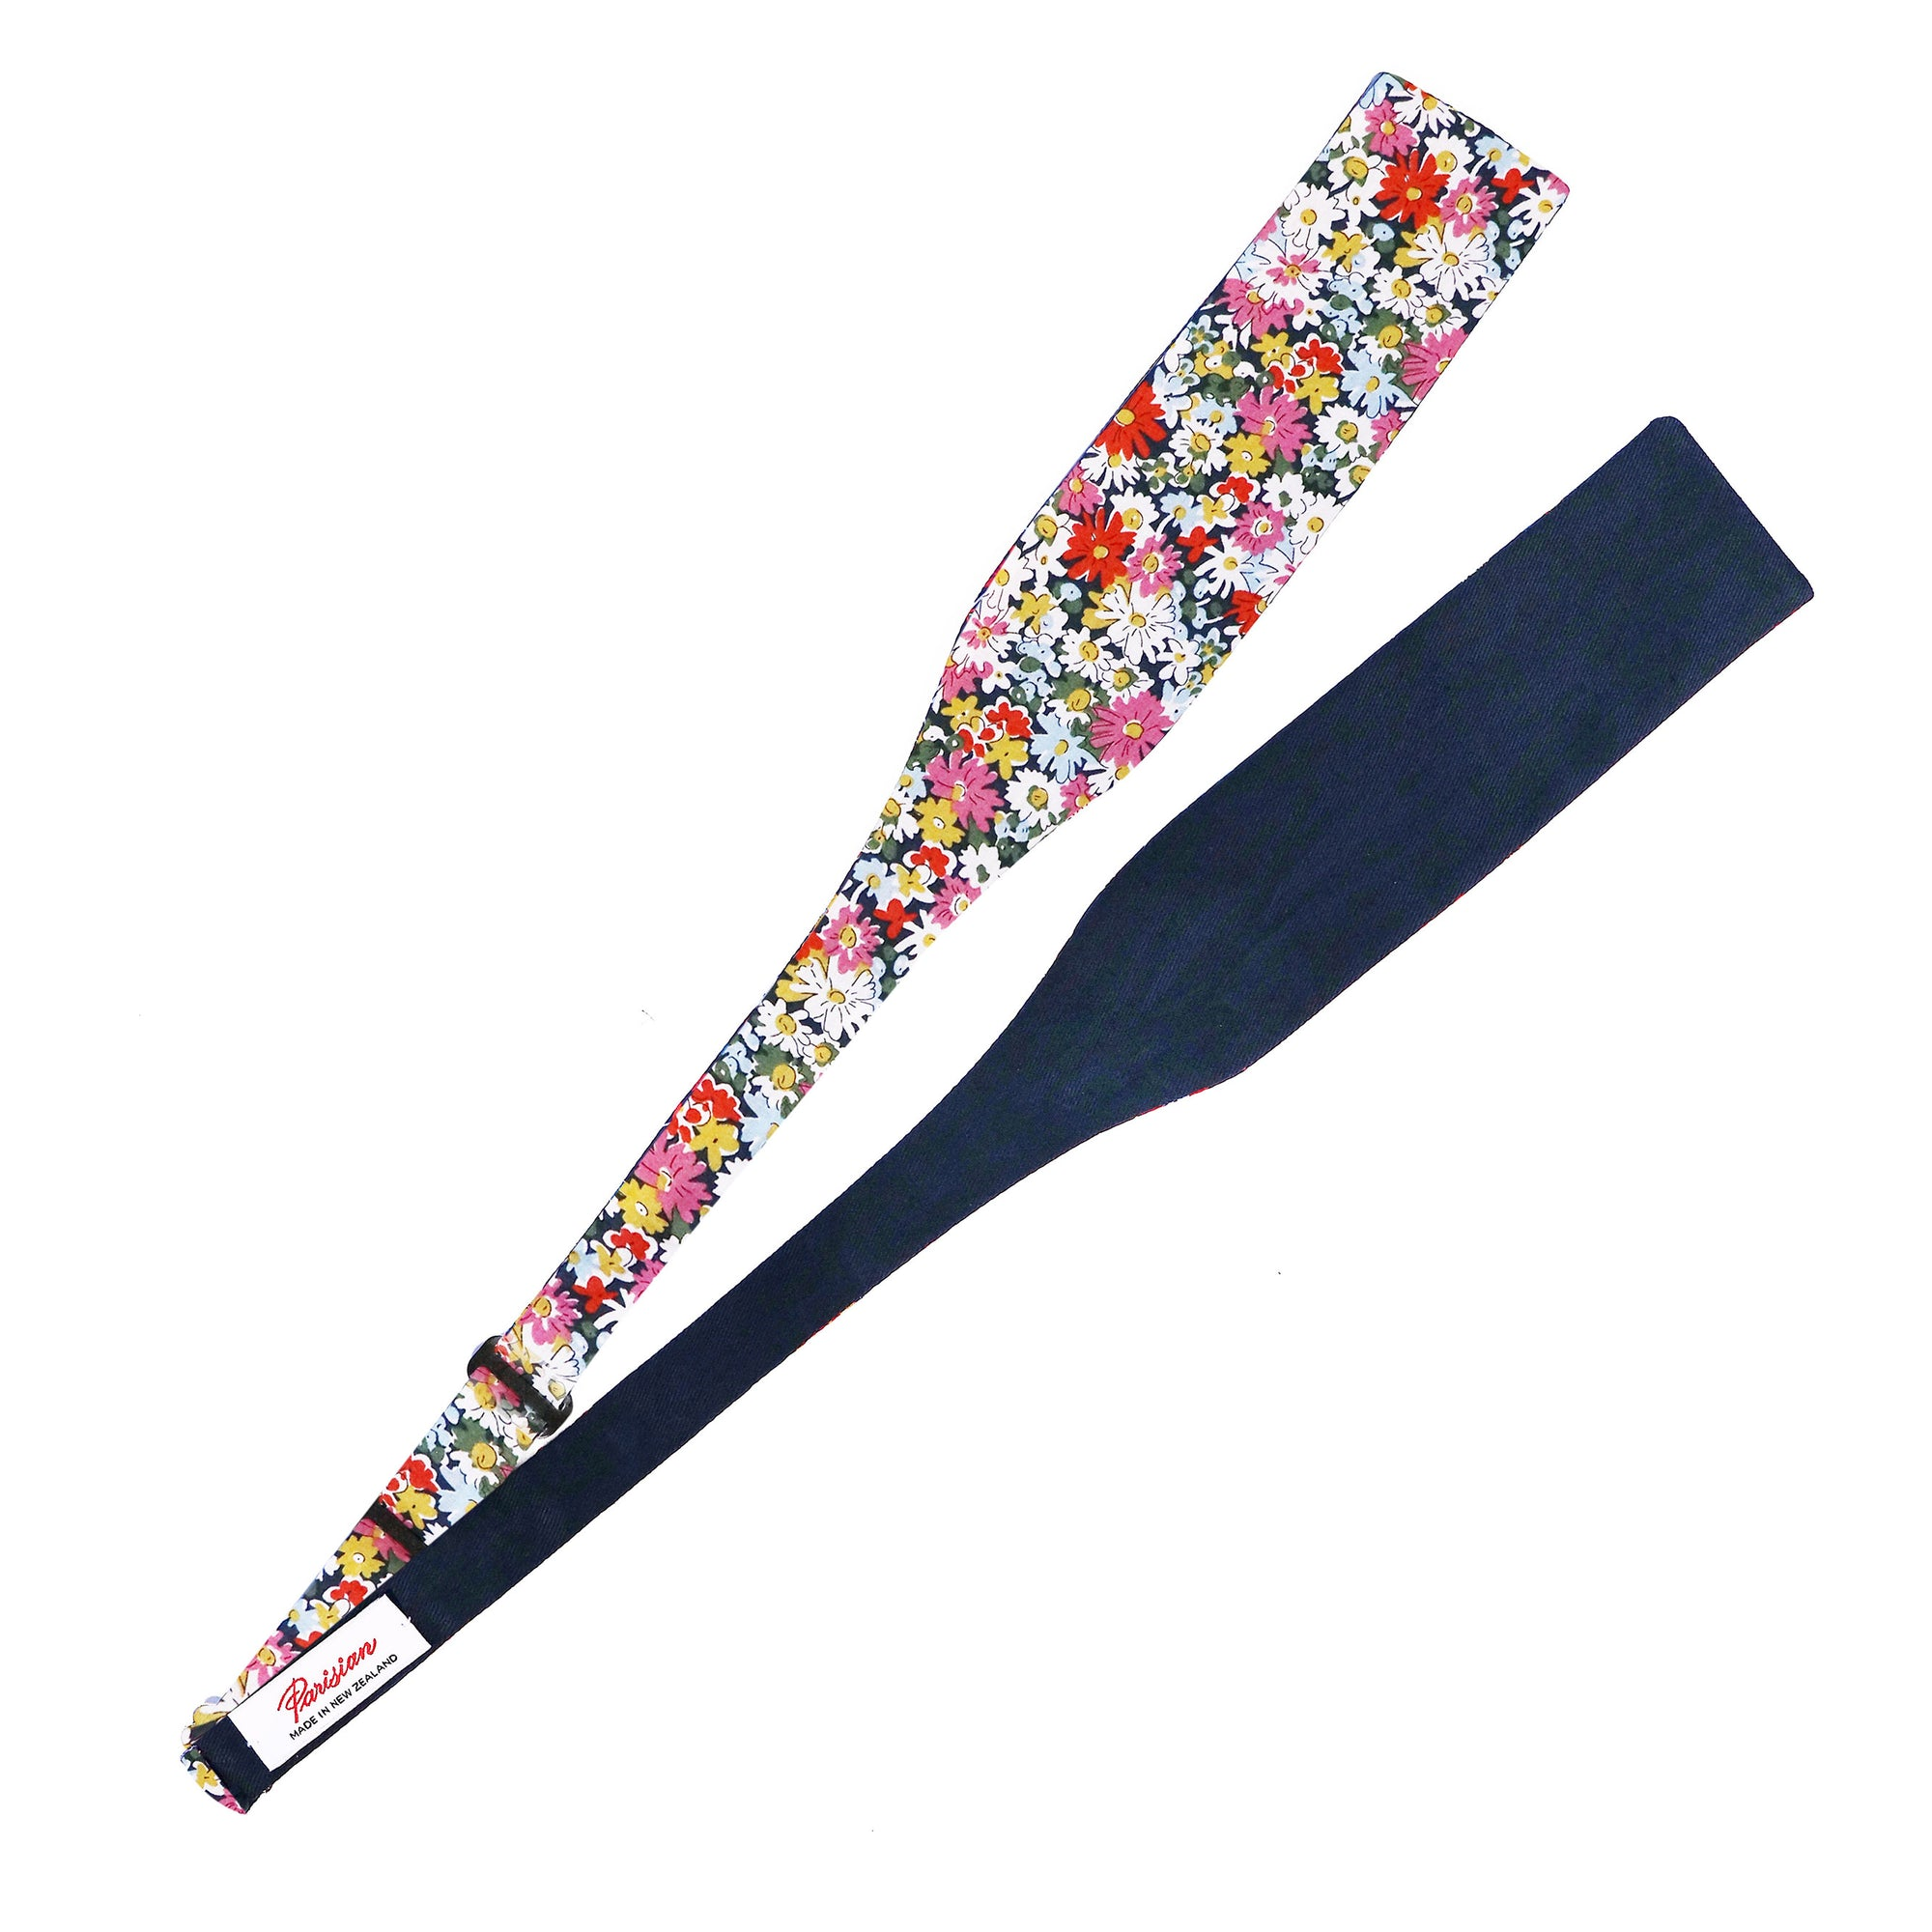 Create your own dapper style with this Liberty cotton floral self tie bow tie  made in NZ by Parisian - fully adjustable